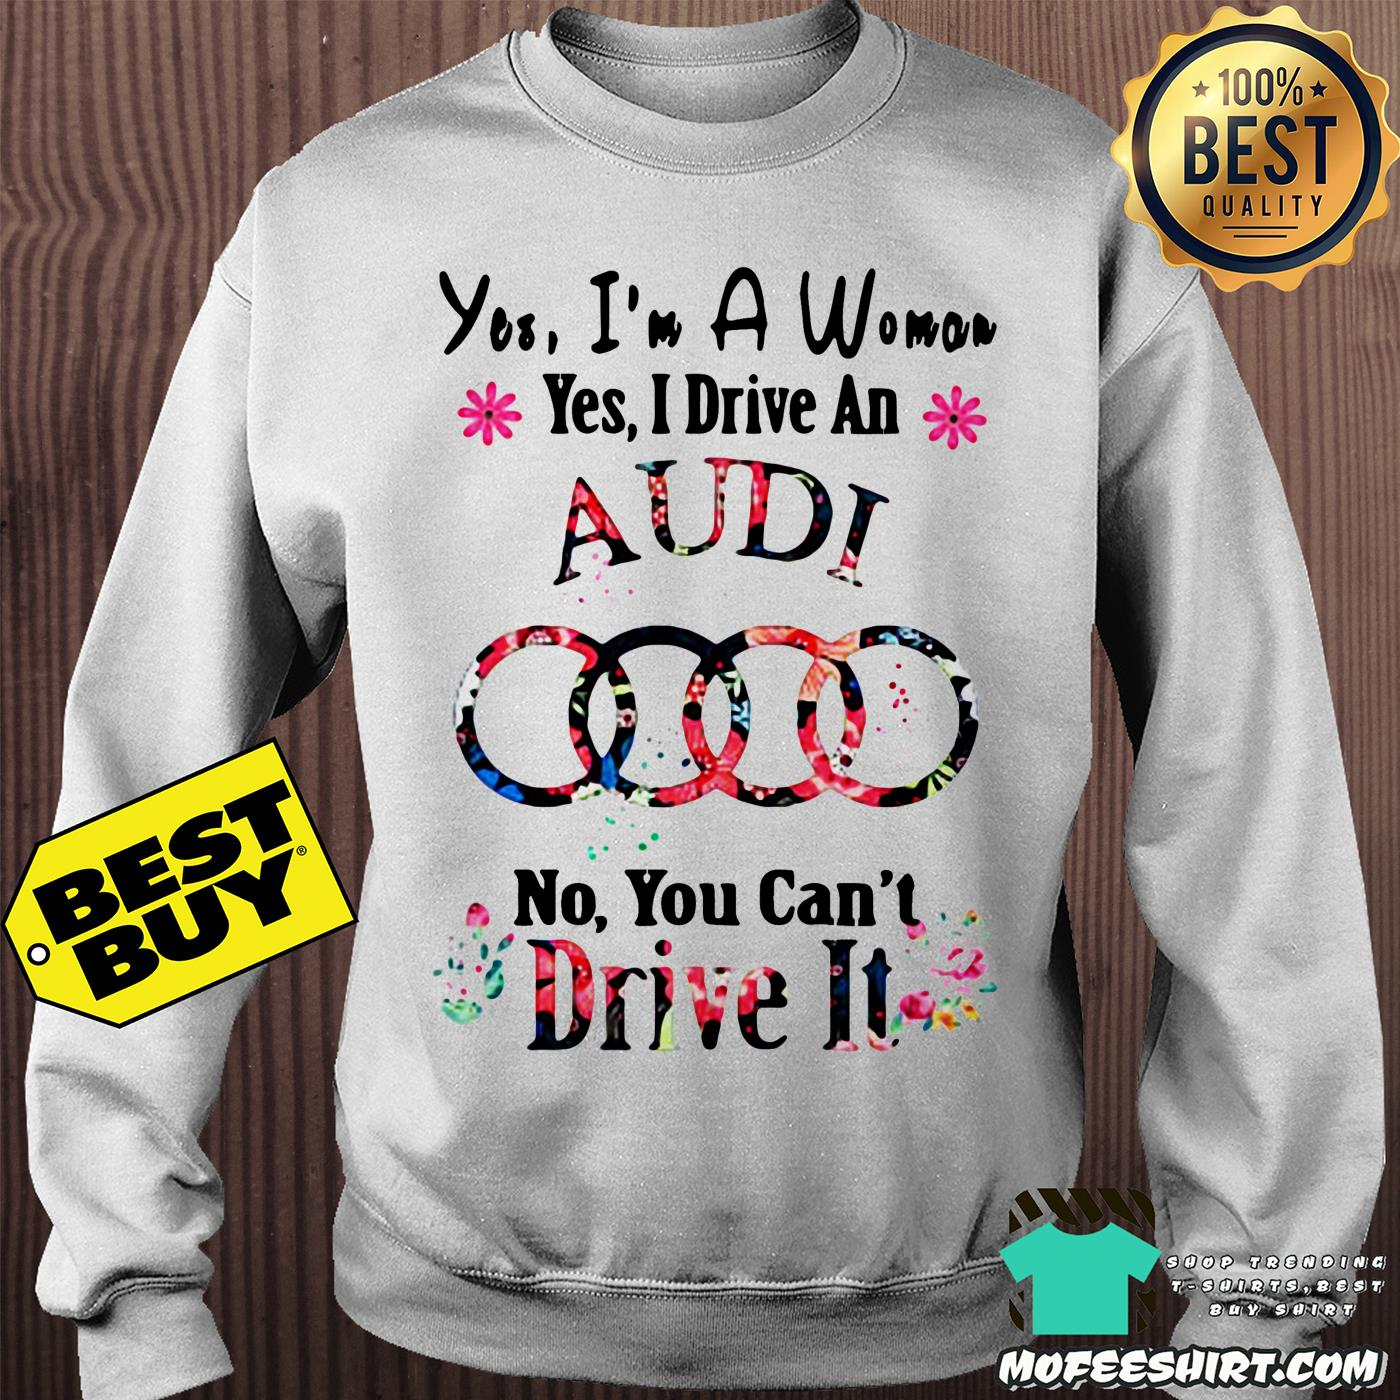 yes im a woman yes i drive an audi no you cant drive it flower sweatshirt - Yes, I'm a woman yes I drive an Audi no you can't drive it flower shirt